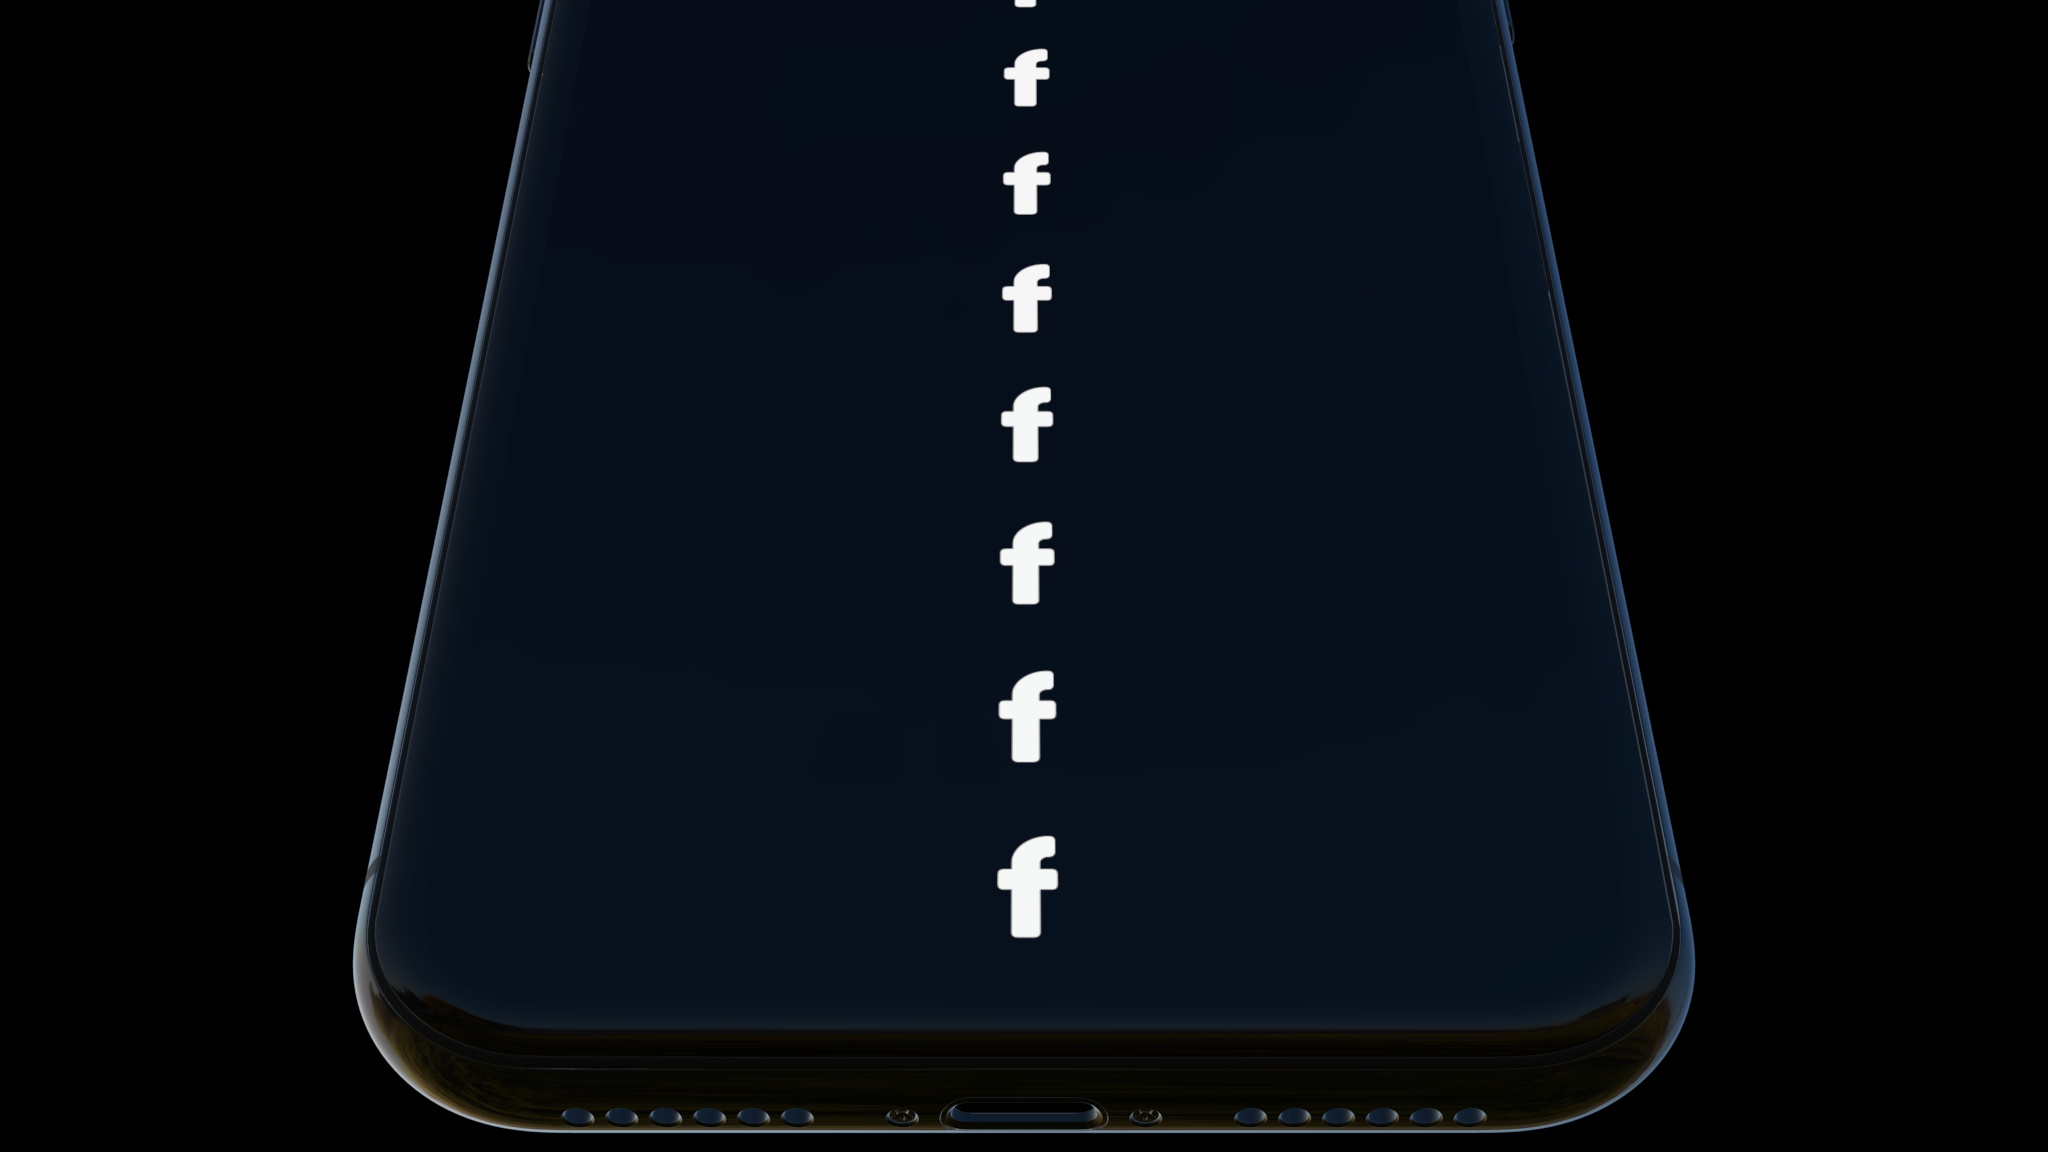 An iPhone mockup demonstrating no depth of field